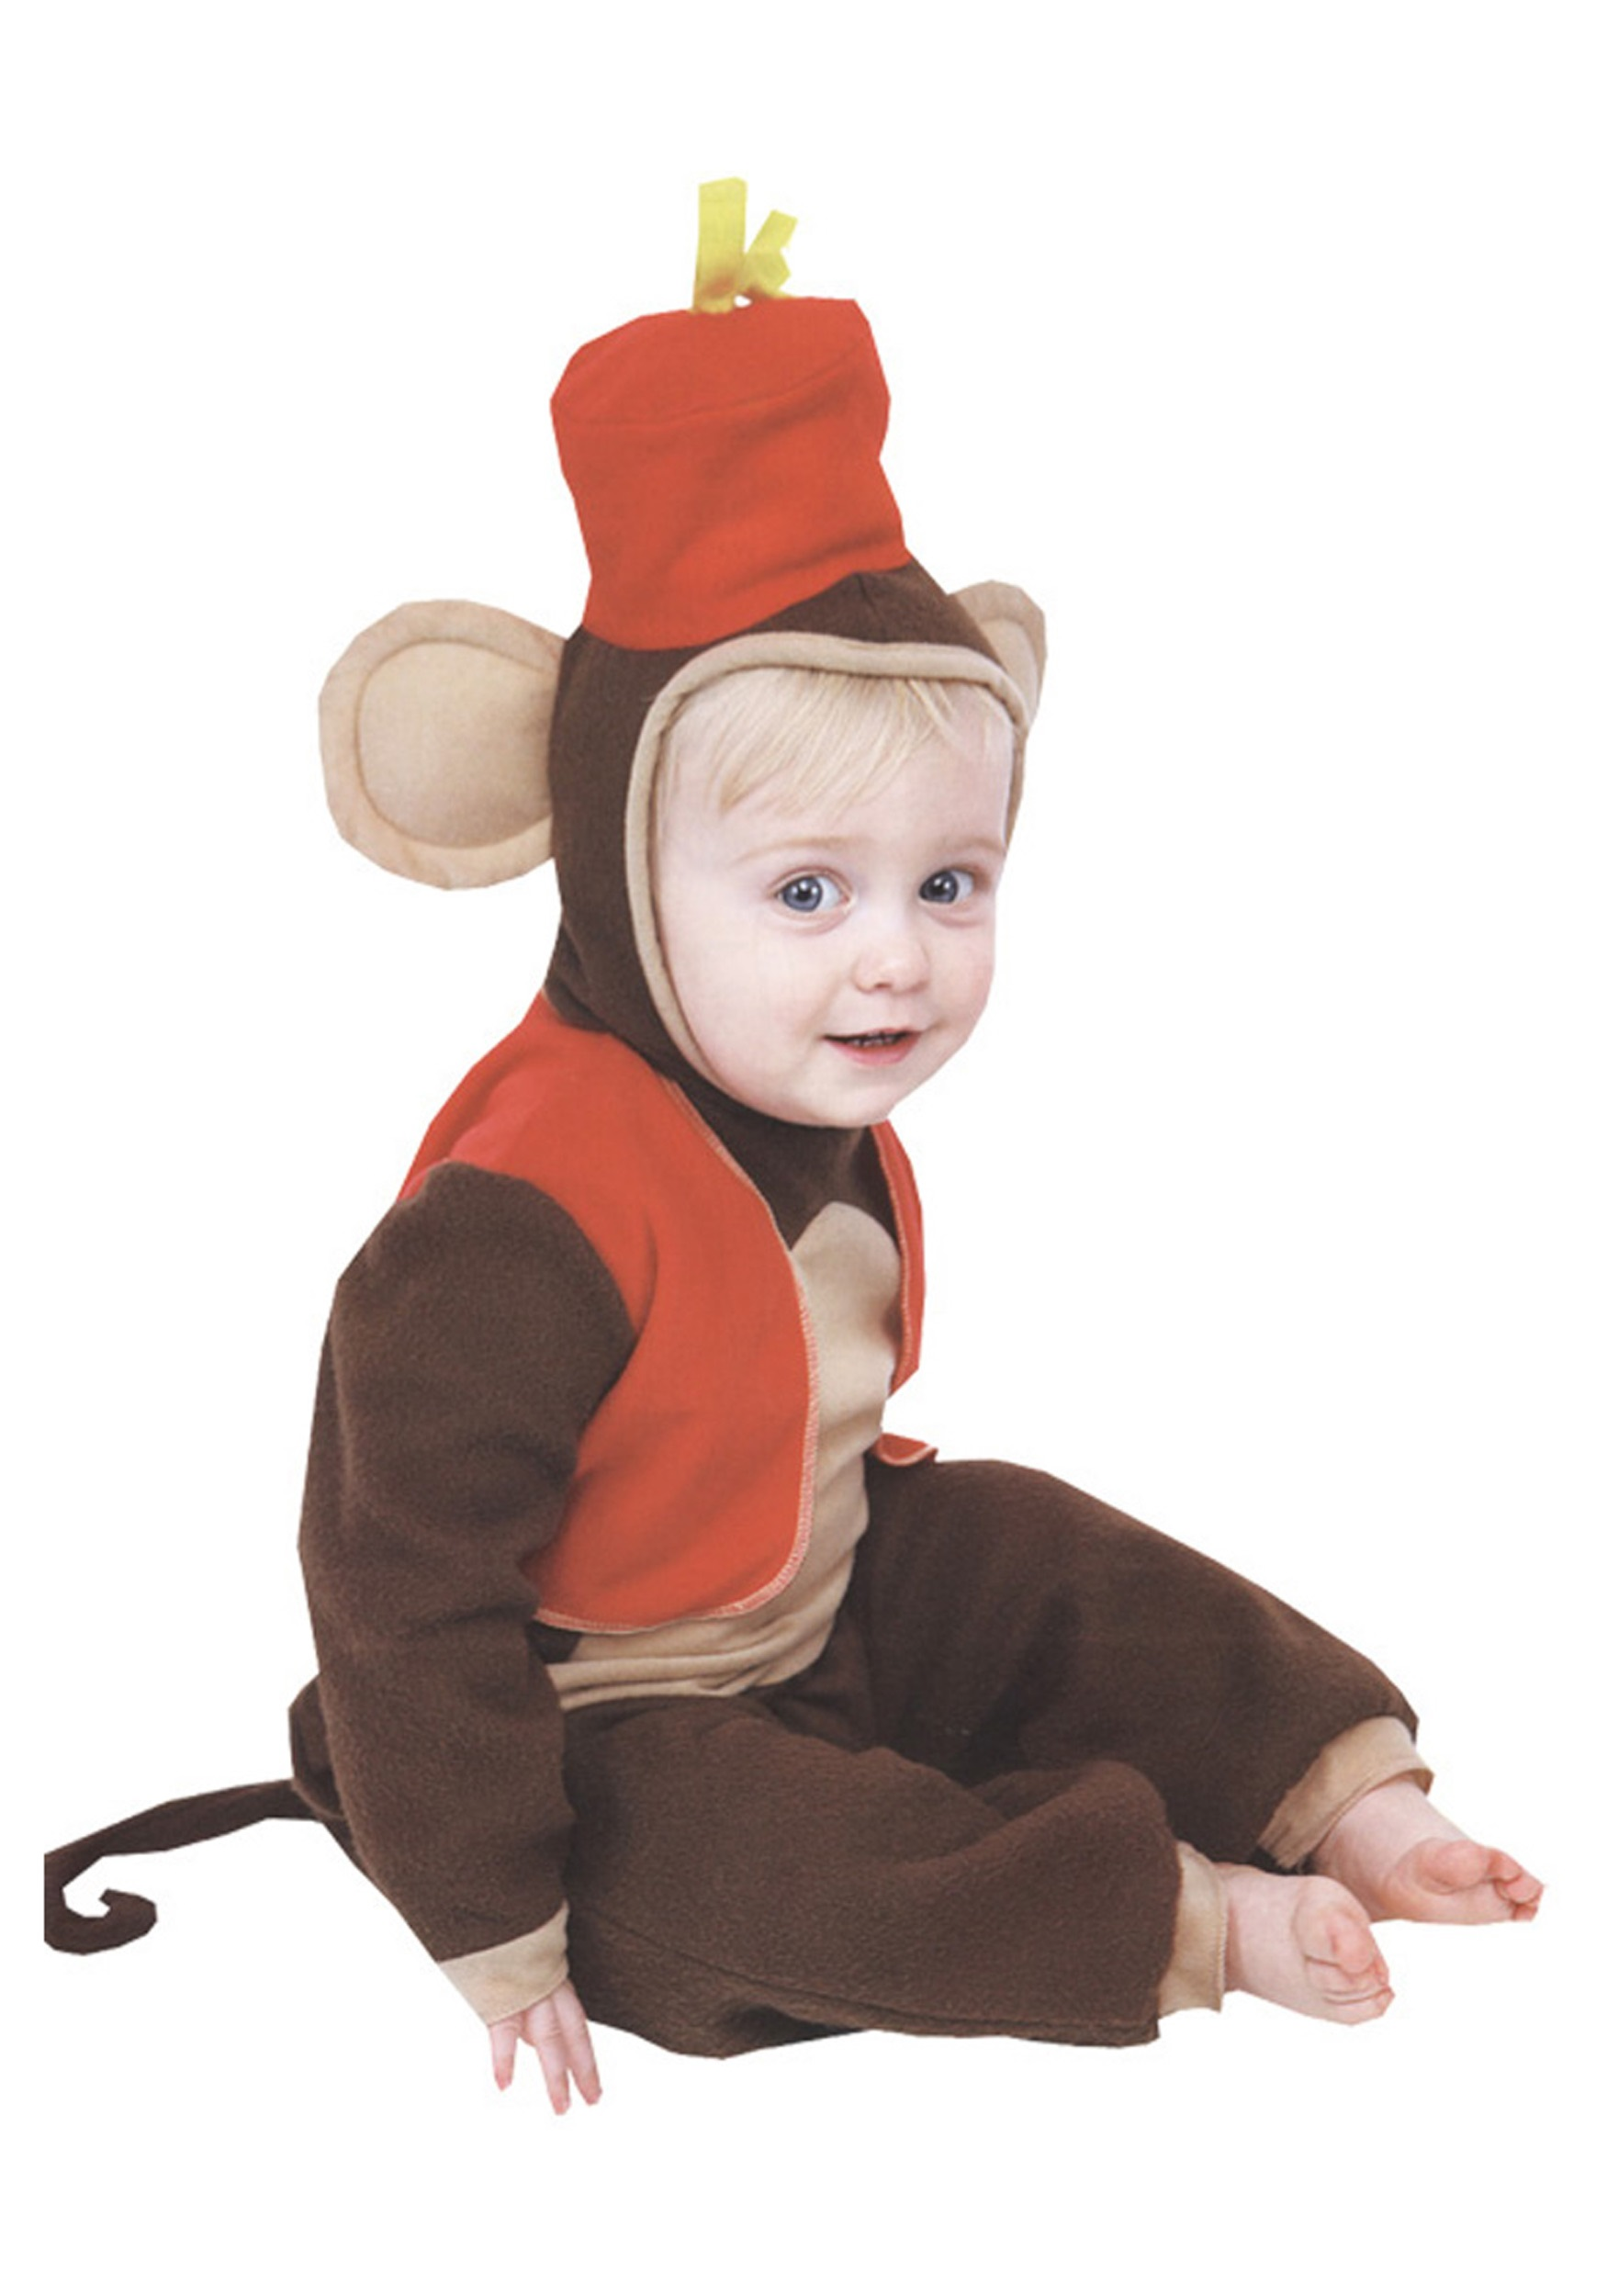 Wrap your little one in custom Girl Monkey baby clothes. Cozy comfort at Zazzle! Personalized baby clothes for your bundle of joy. Choose from huge ranges of designs today!